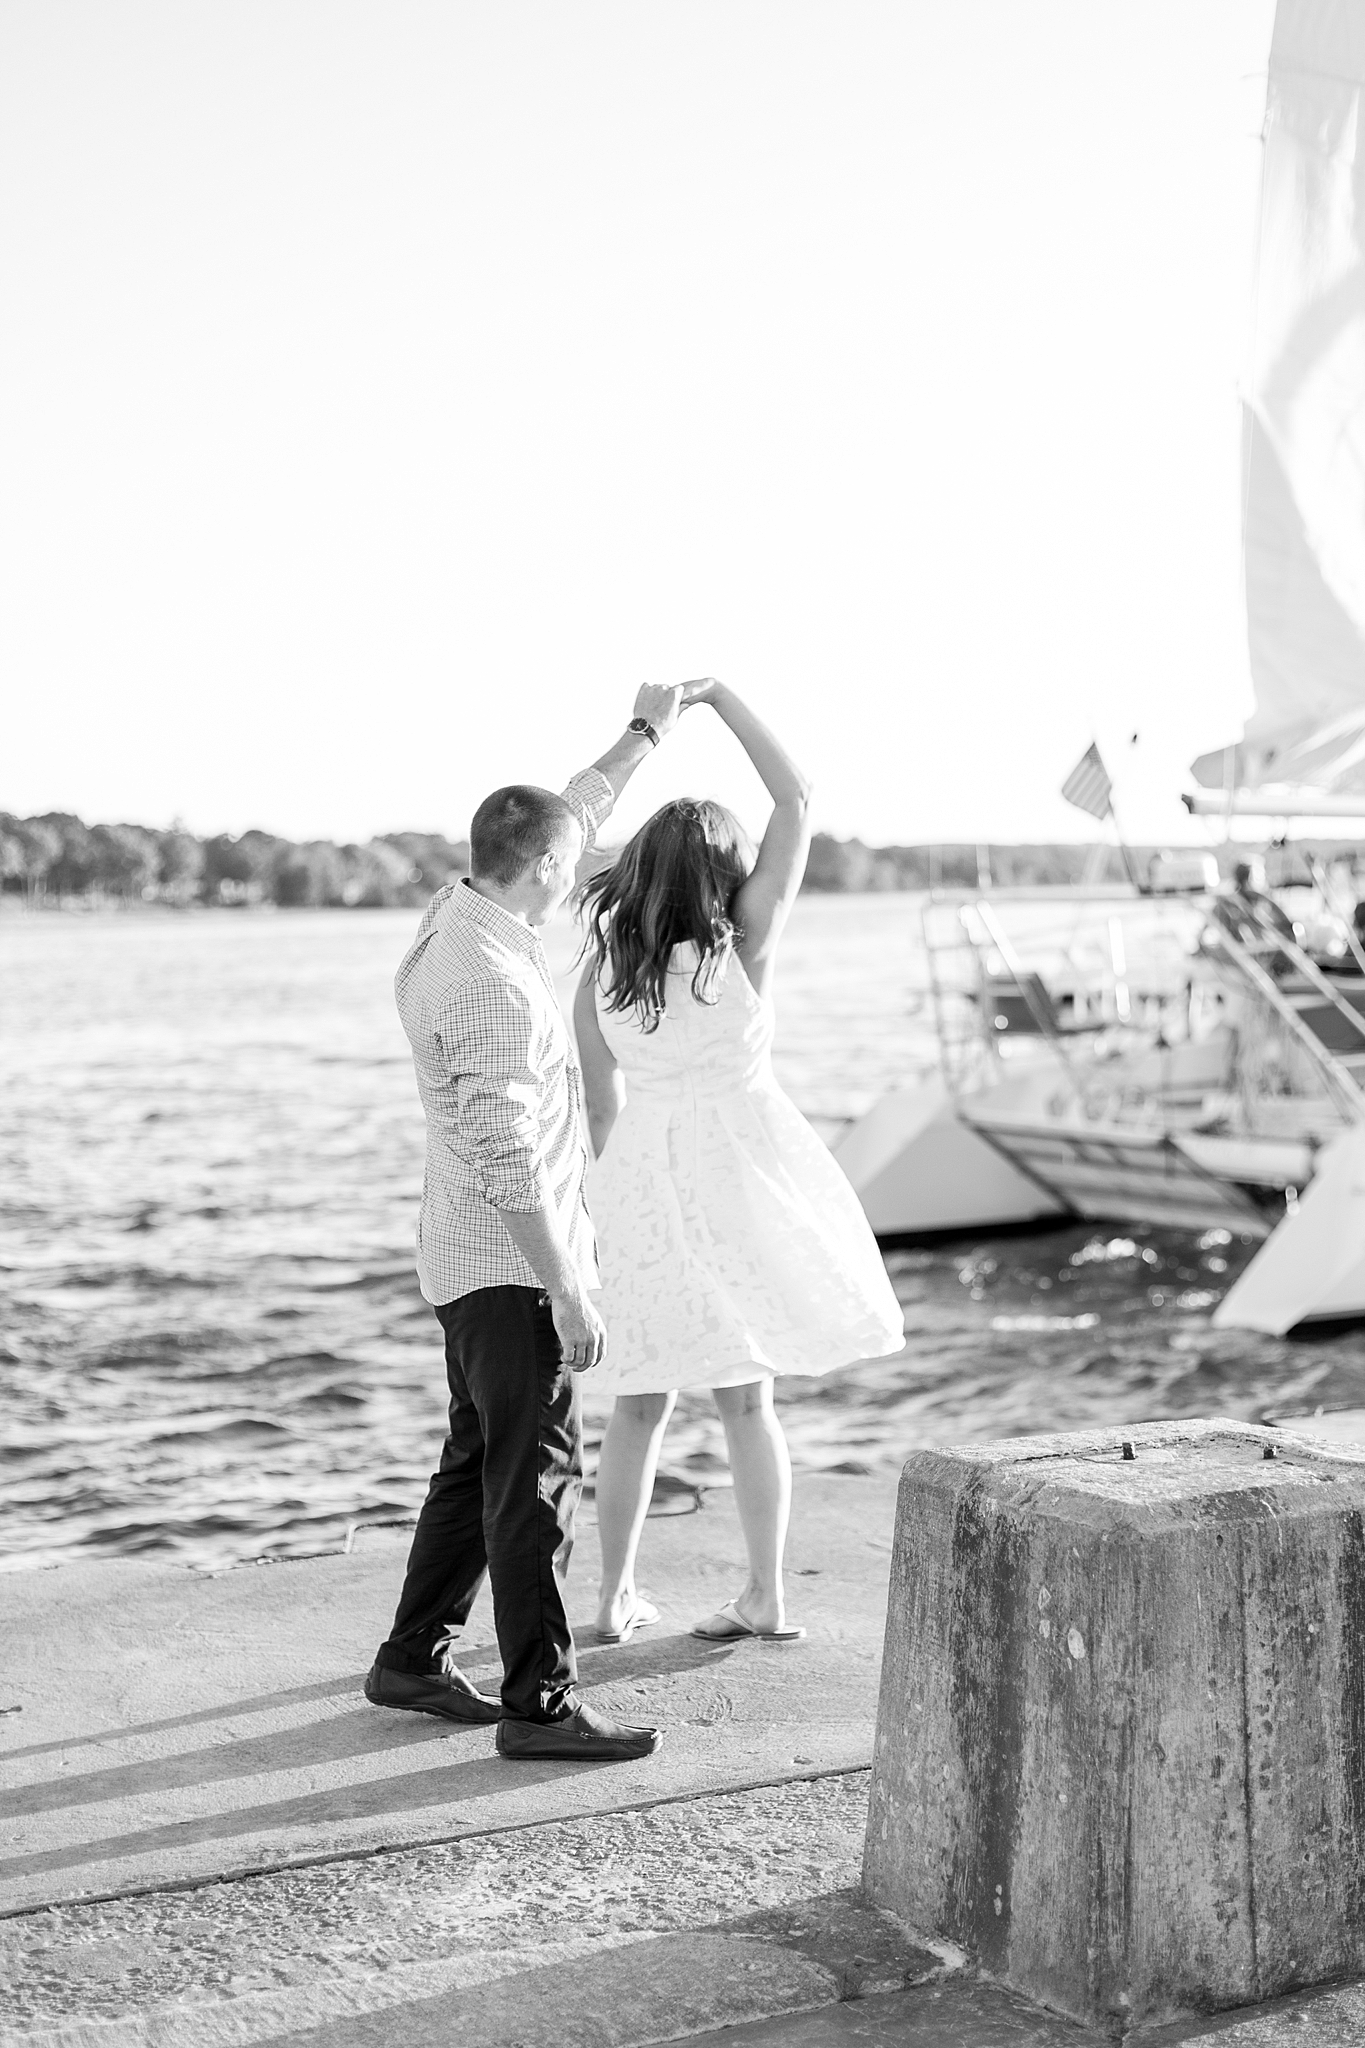 waterfront-lighthouse-engagement-photography-in-charlevoix-mi-by-courtney-carolyn-photography_0011.jpg